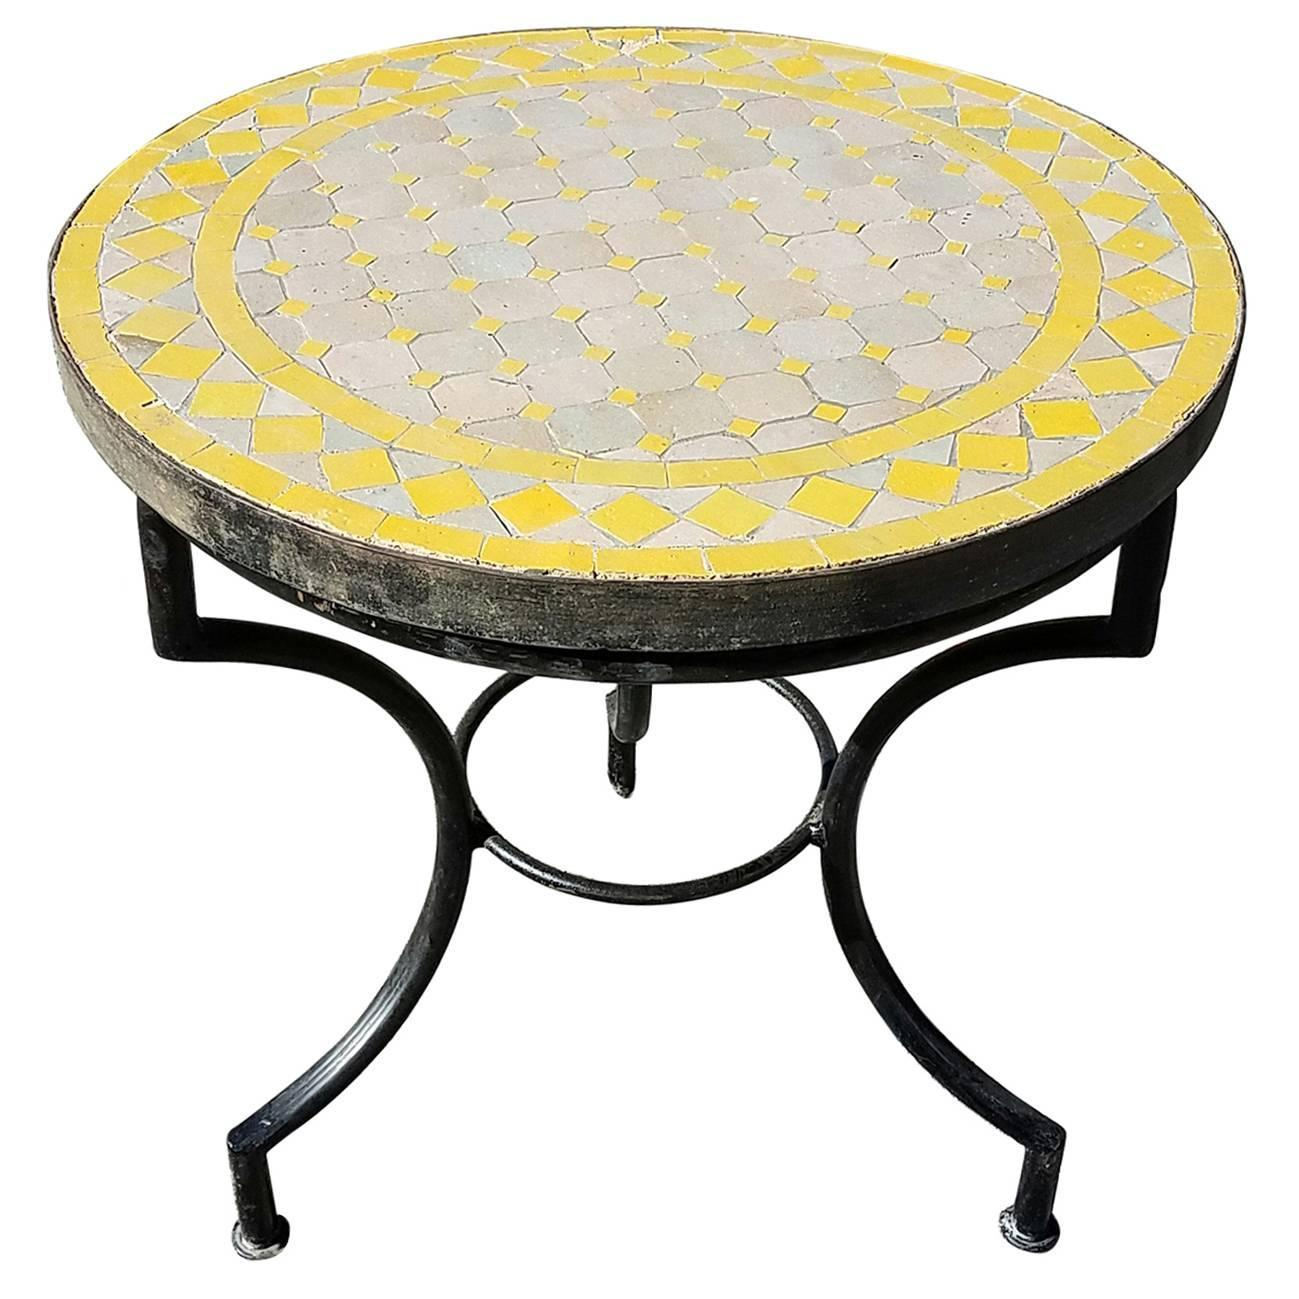 Yellow tan moroccan mosaic table wrought iron base for for Wrought iron side table base